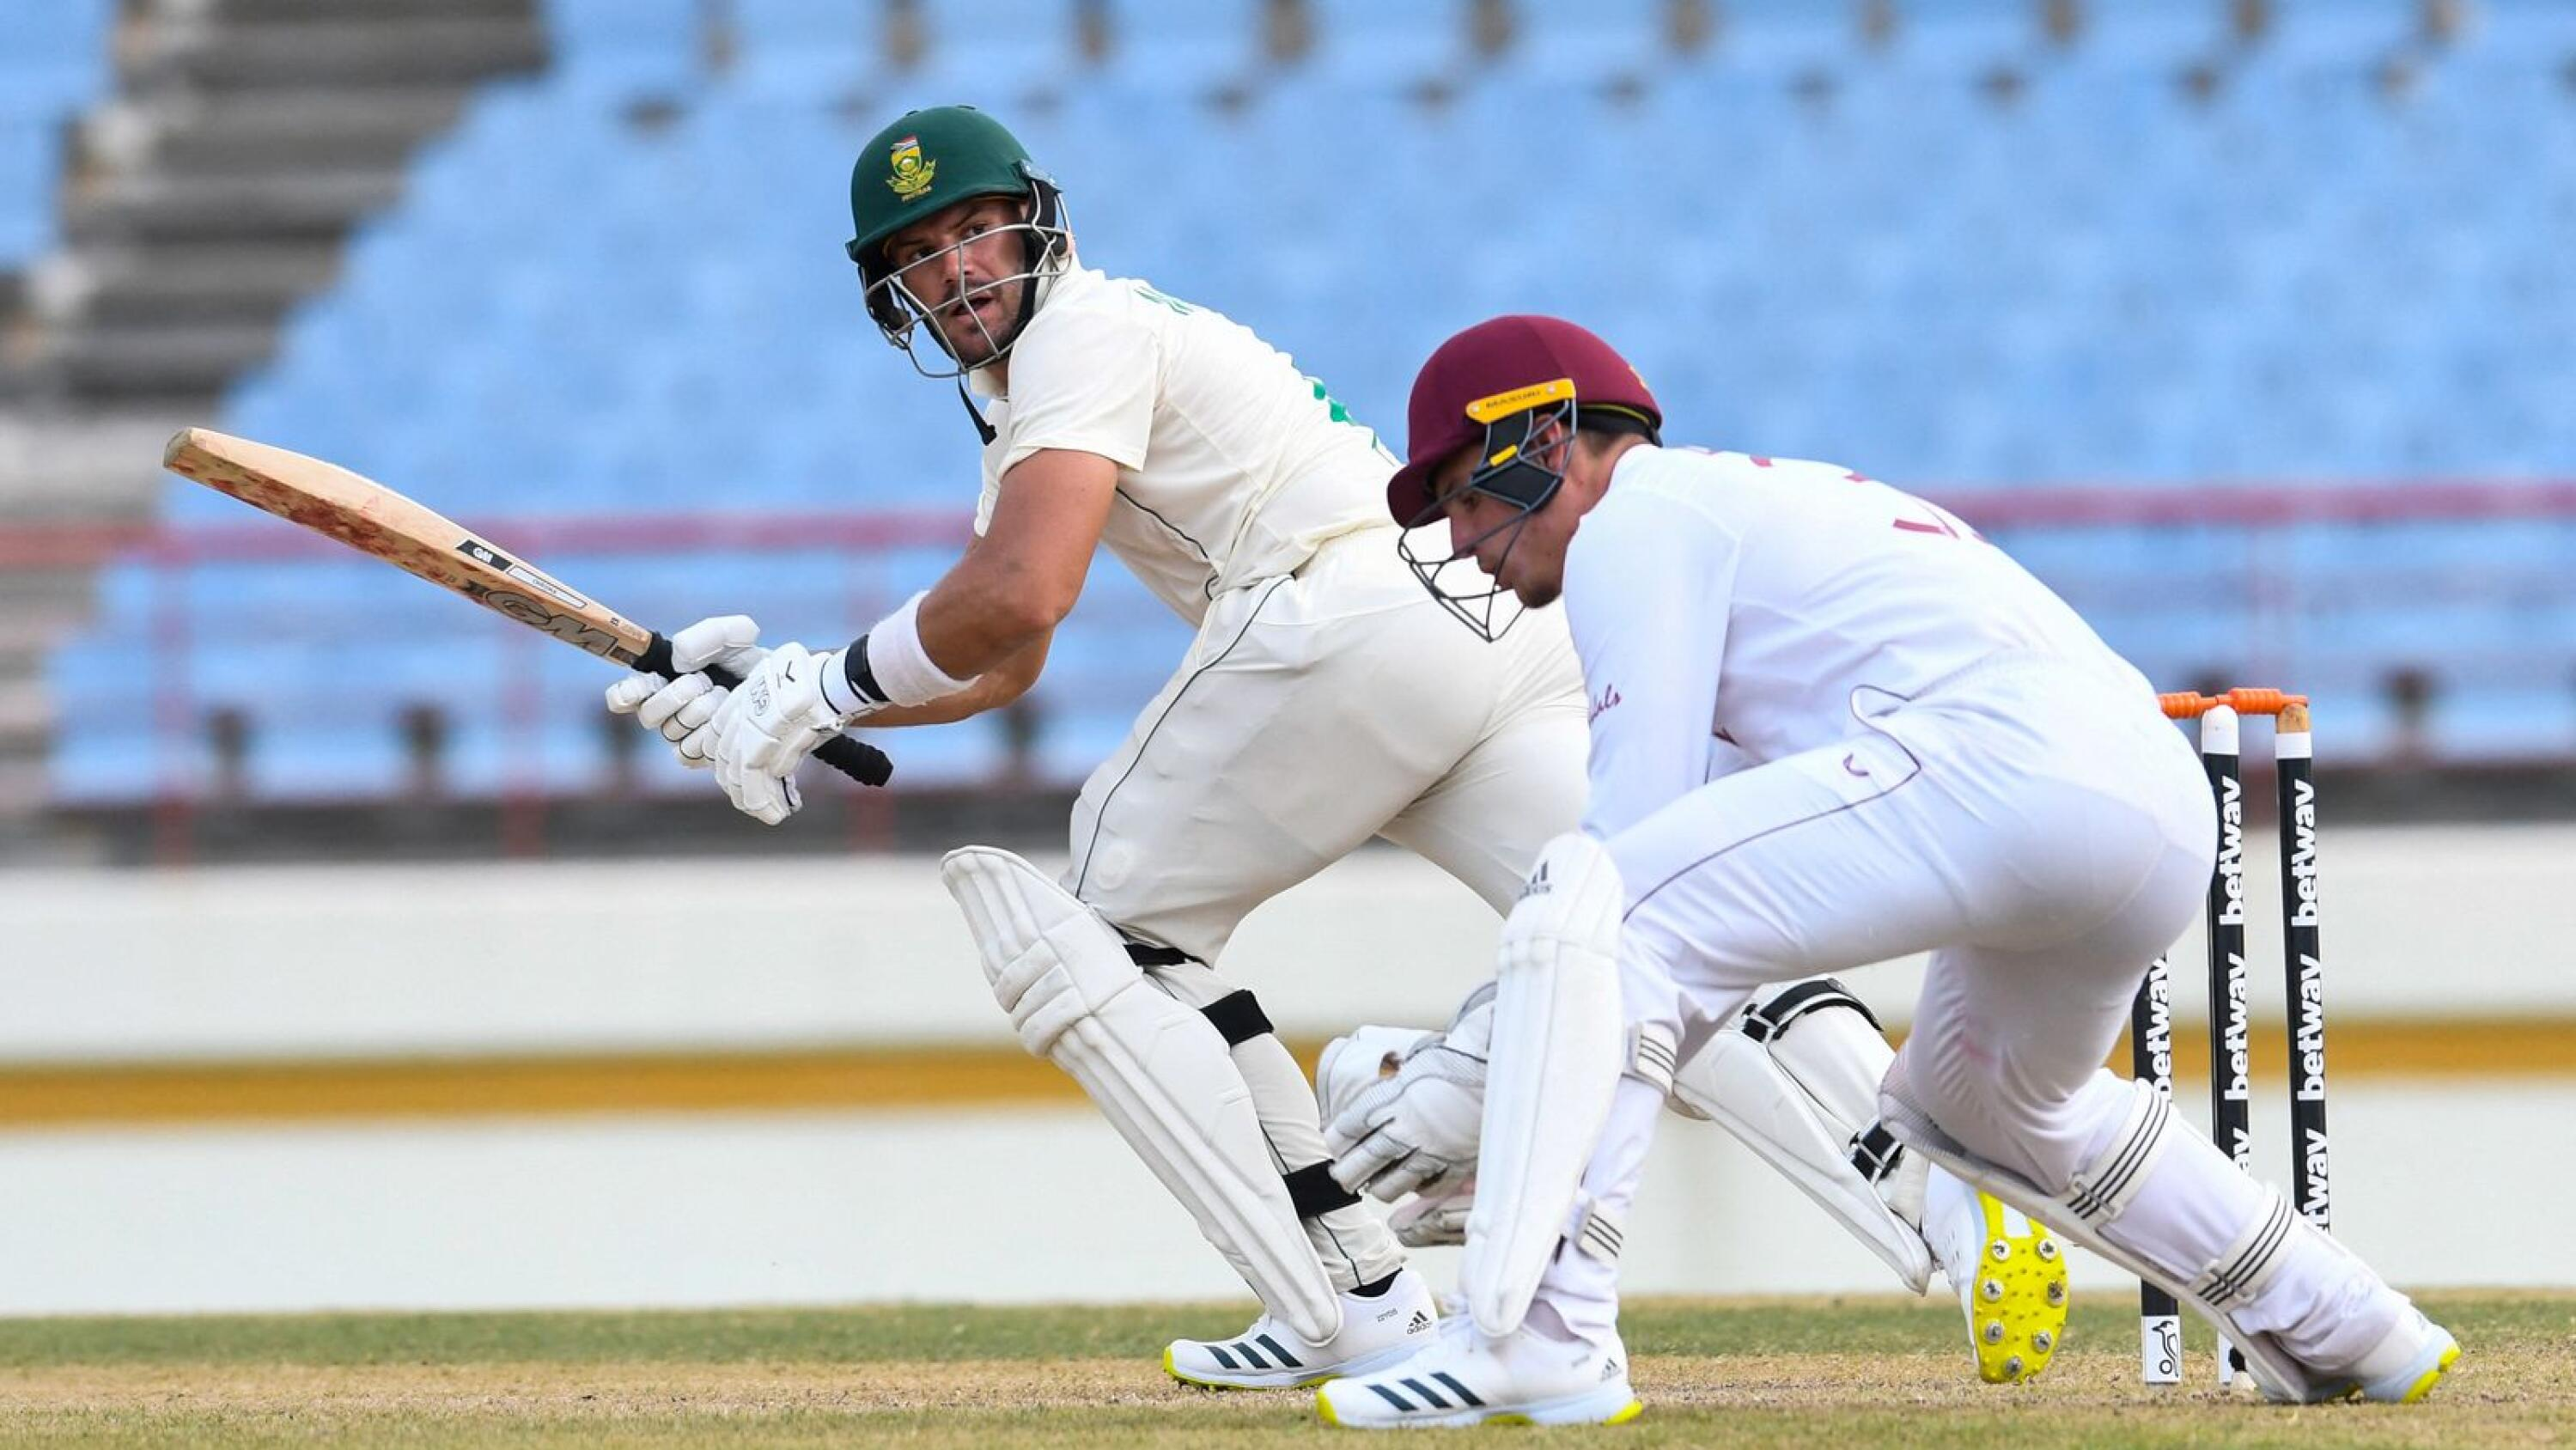 Aiden Markram of South Africa hits pass Joshua de Silva of the West Indies during day 1 of the first Test at Darren Sammy Cricket Ground, Gros Islet, Saint Lucia